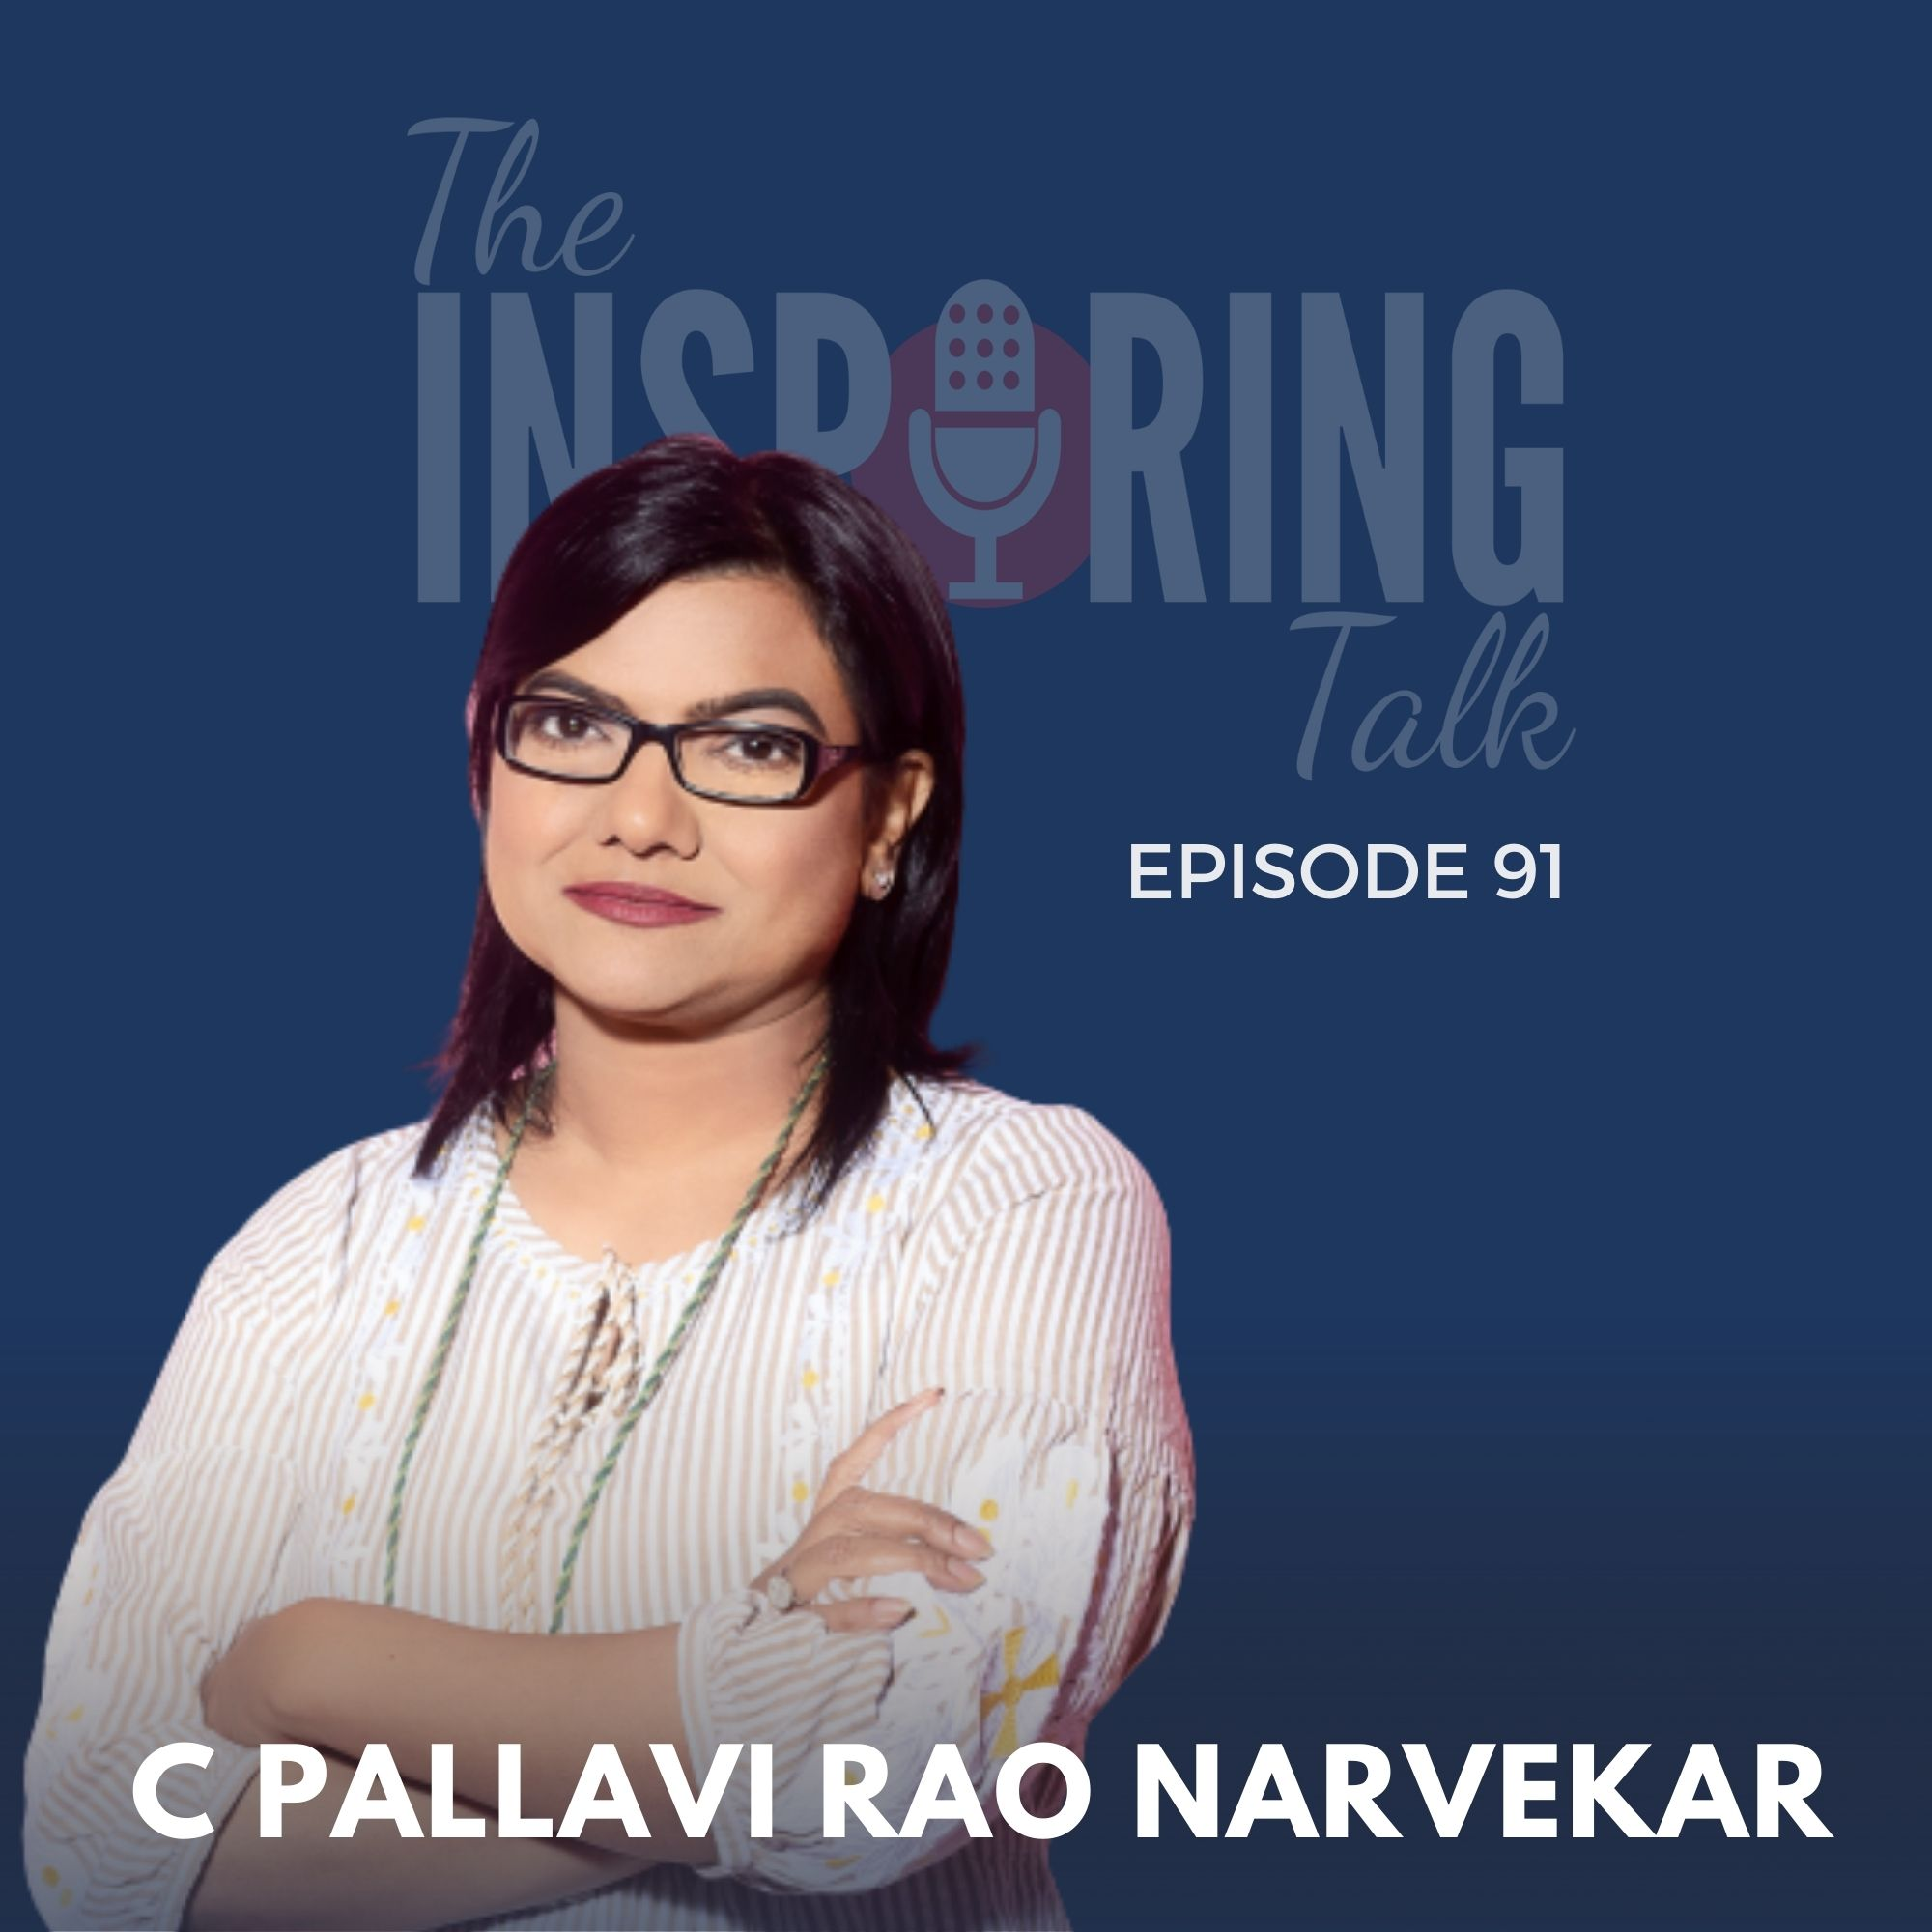 Bouncing Back From Your Biggest Challenges in Life w/ C Pallavi Rao Narvekar: TIT91